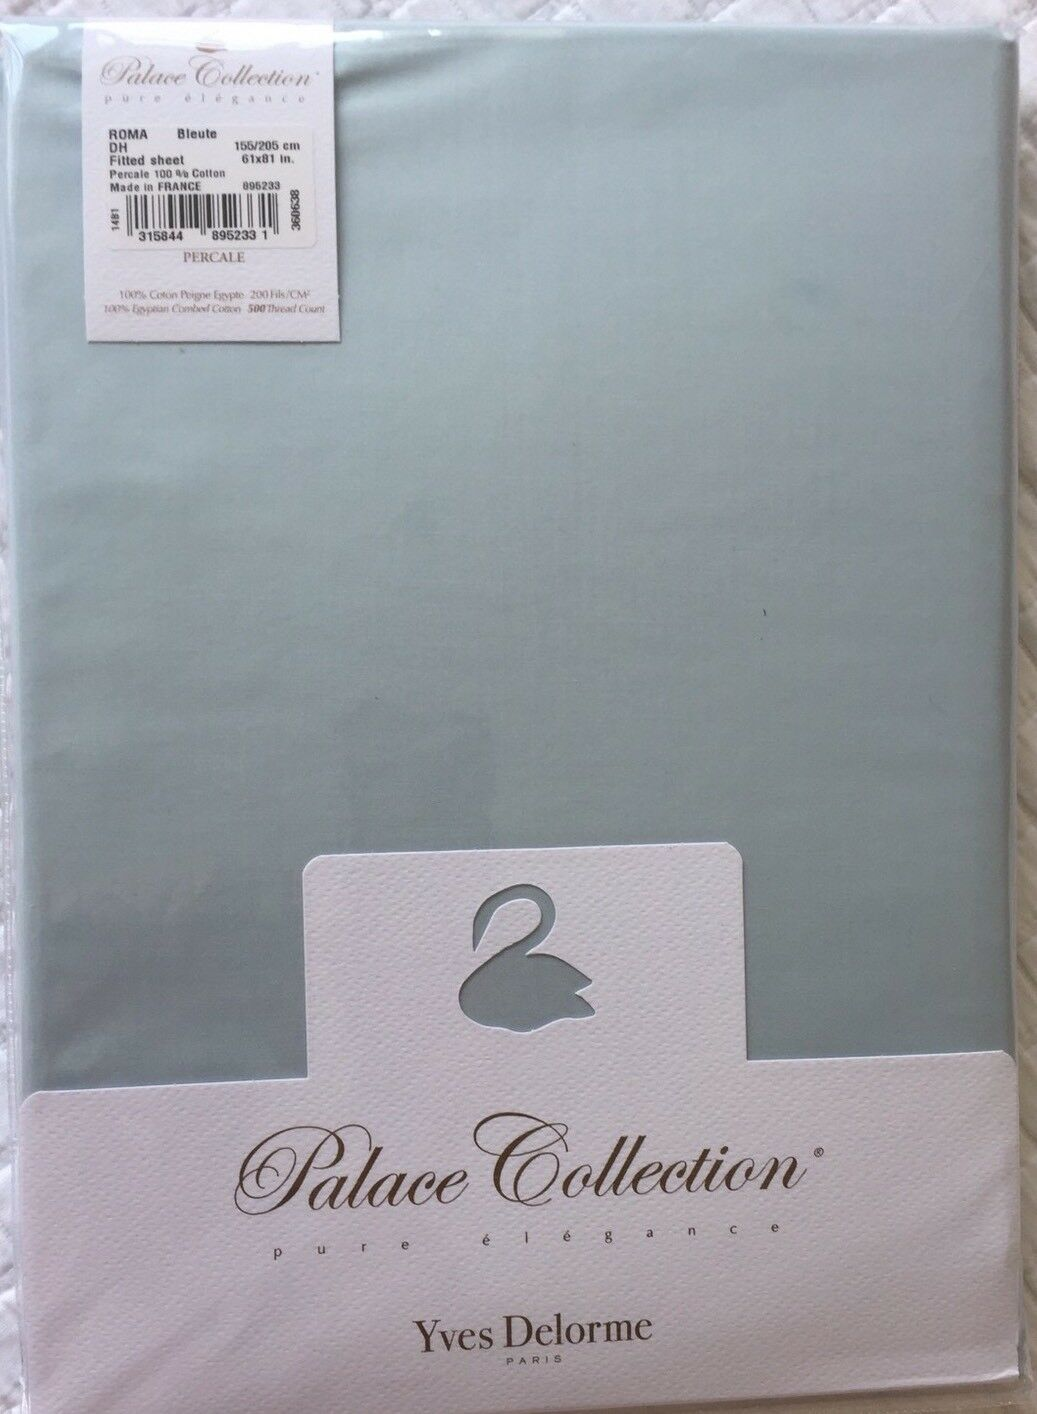 YVES DELORME ROMA BlauTE FITTED SHEET KING PALACE COLLECTION LUXURY